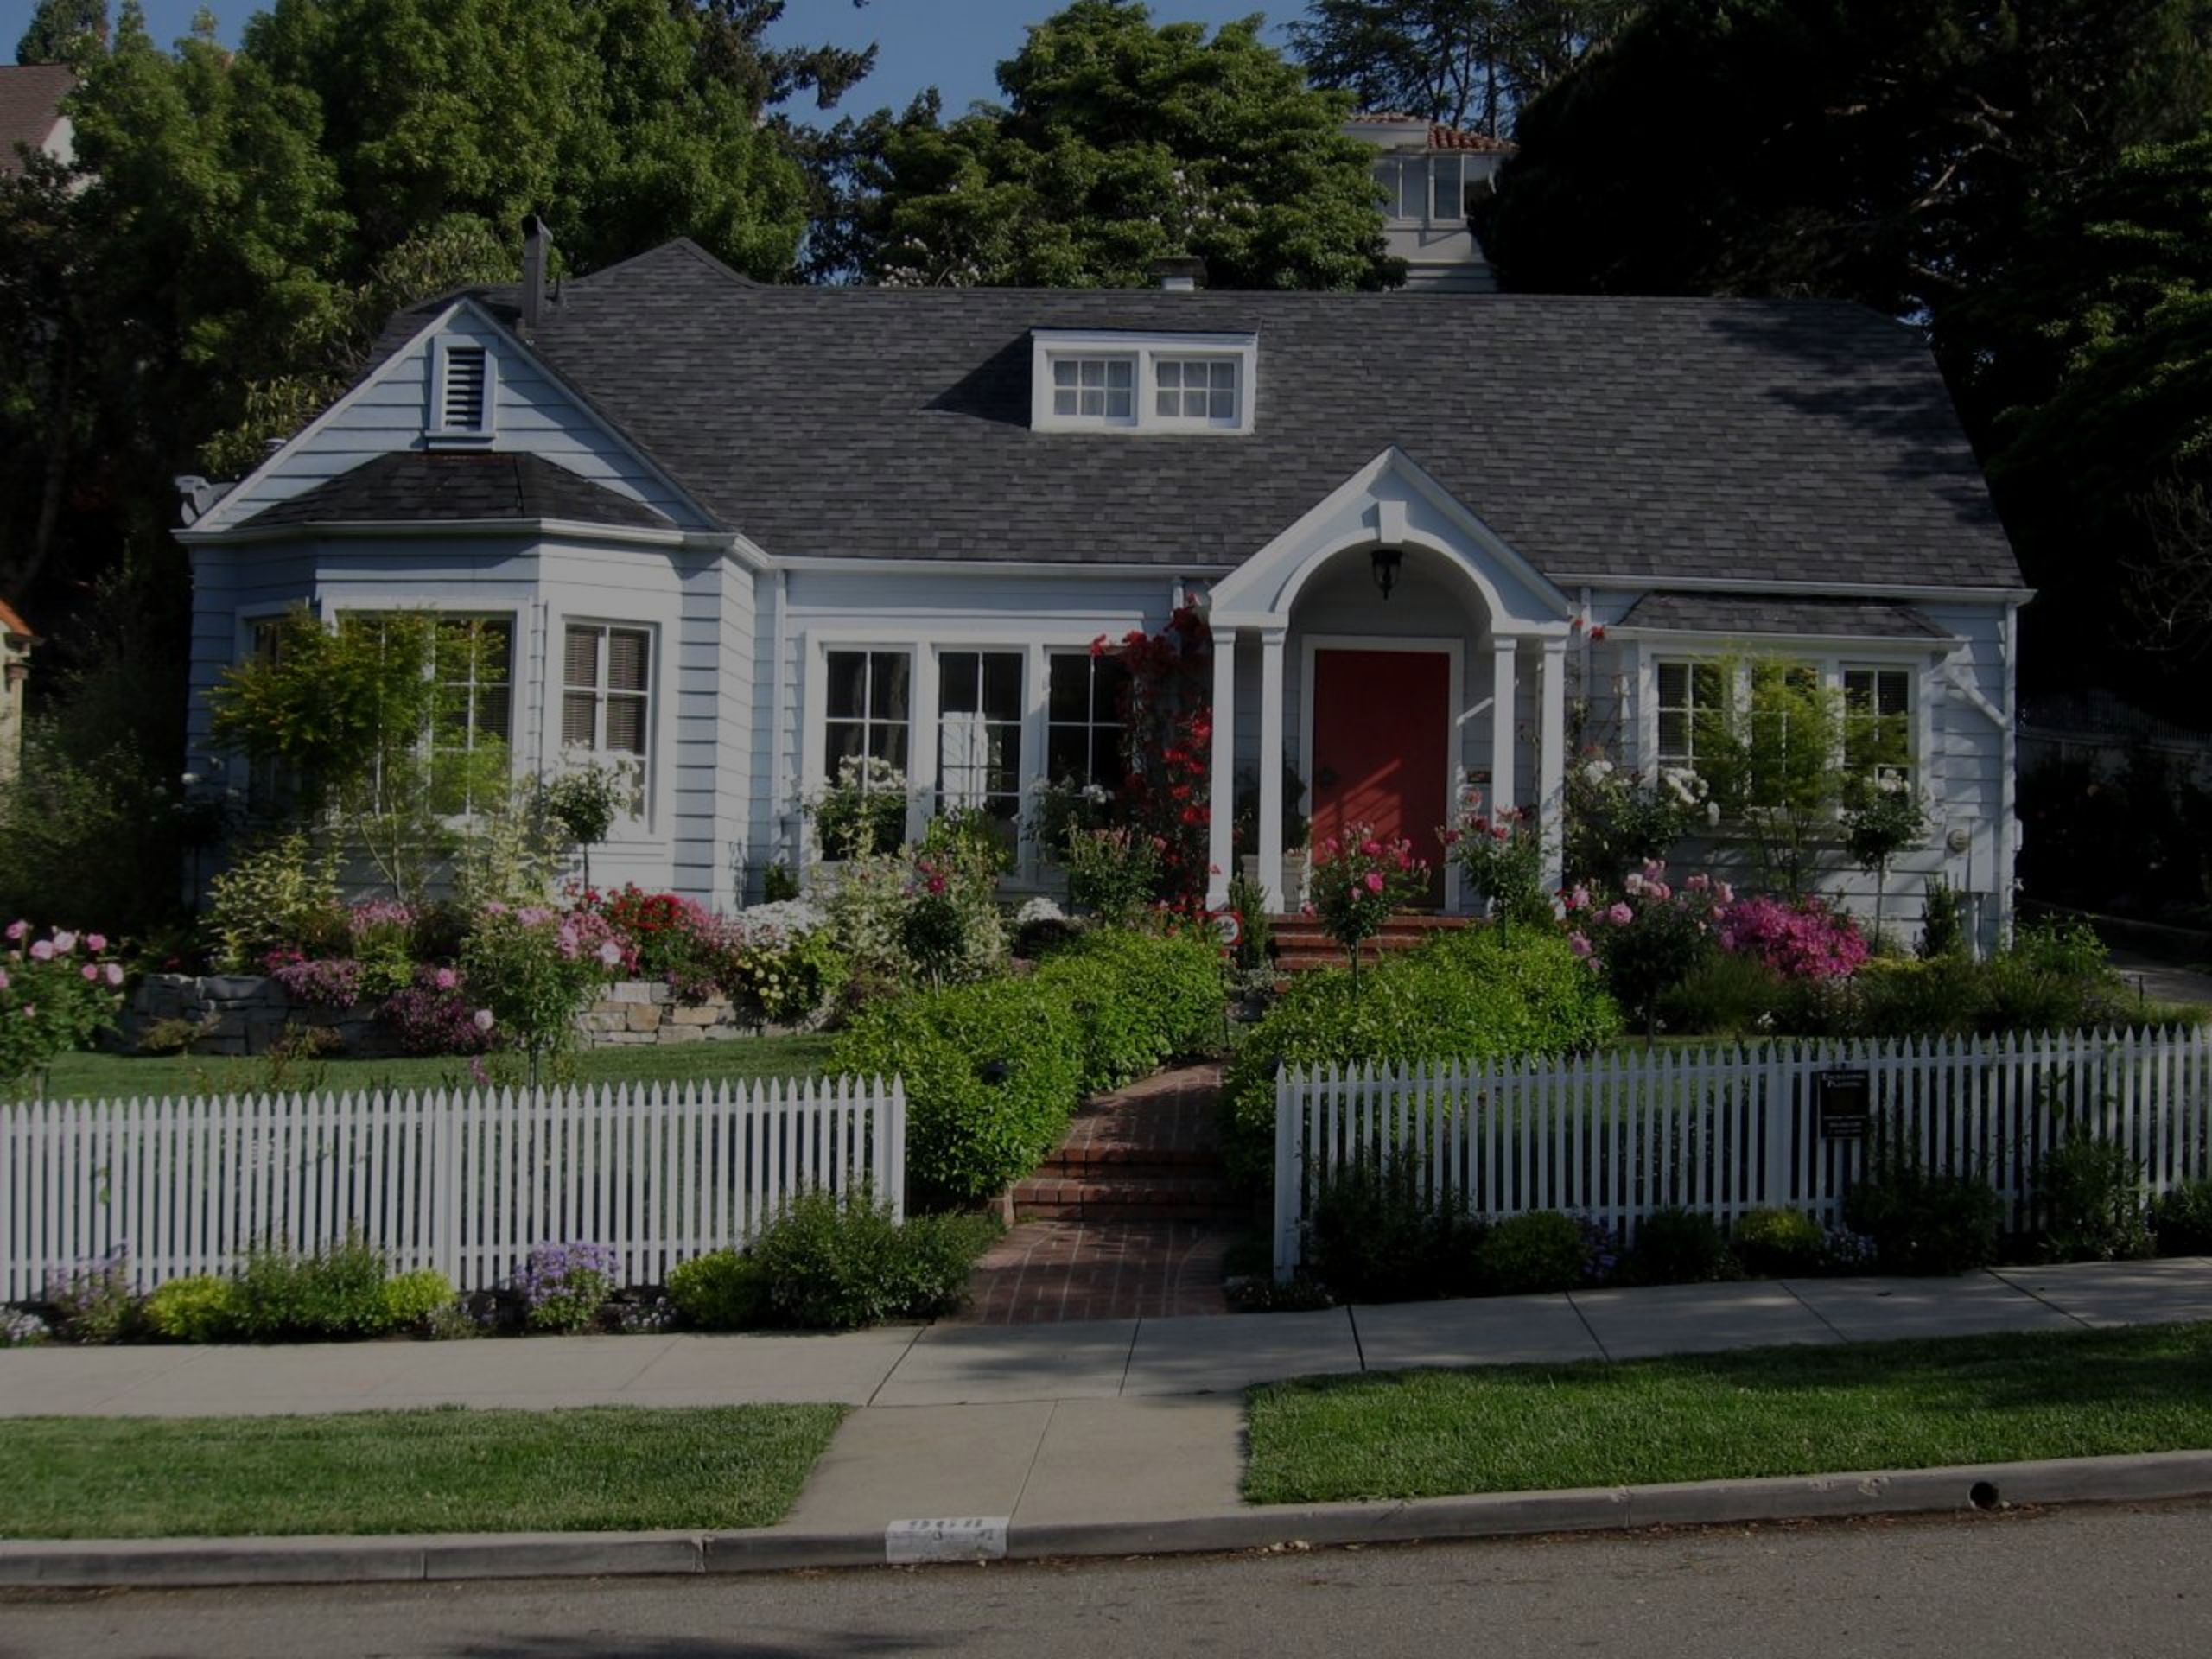 10 Tips To Increase Your Home's Curb Appeal!